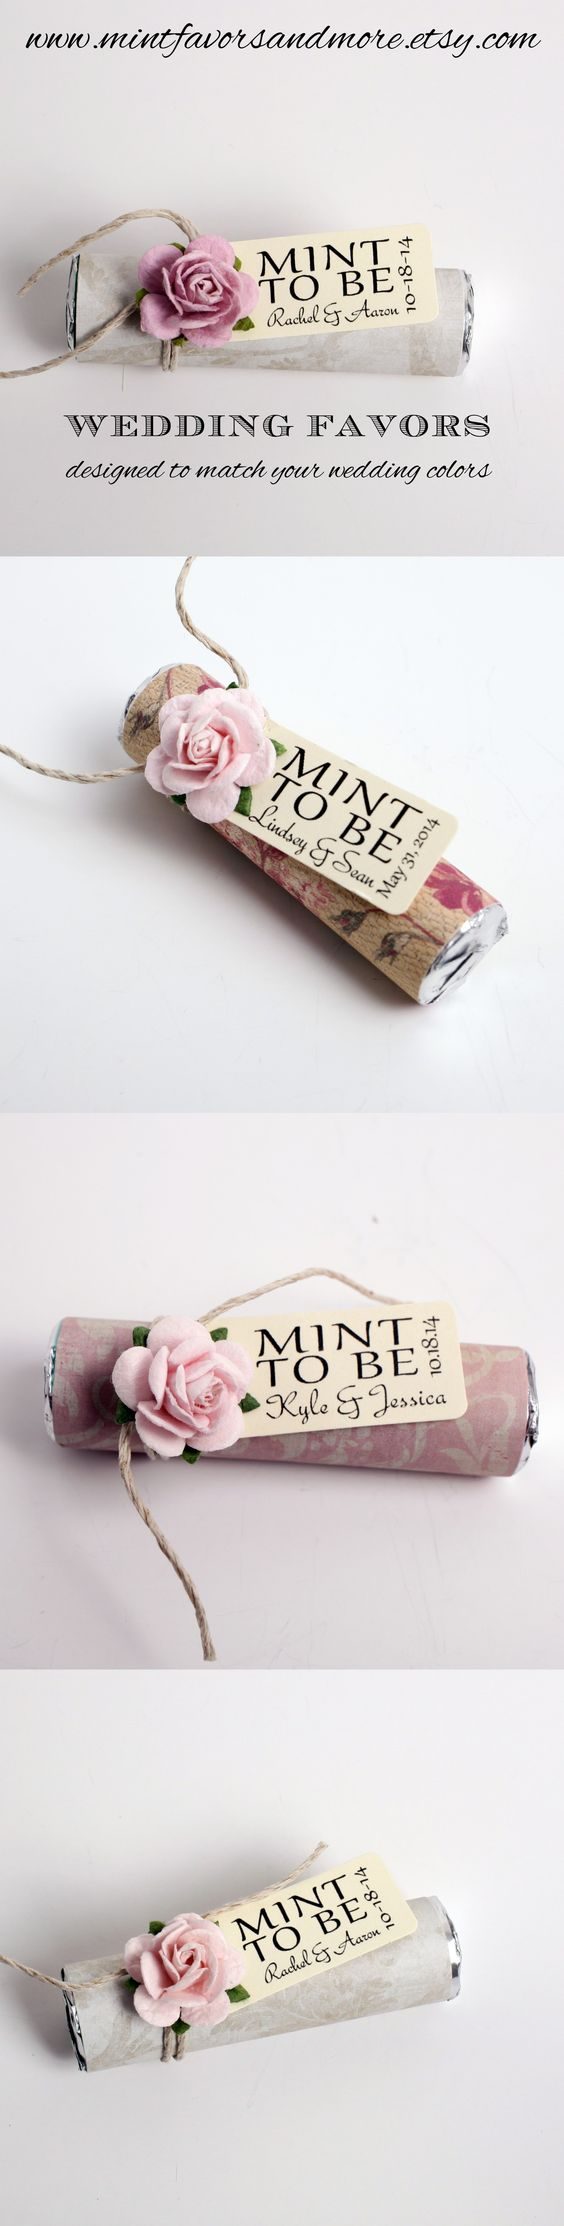 Blush pink wedding favors. Mint candies with a personalized tag ...